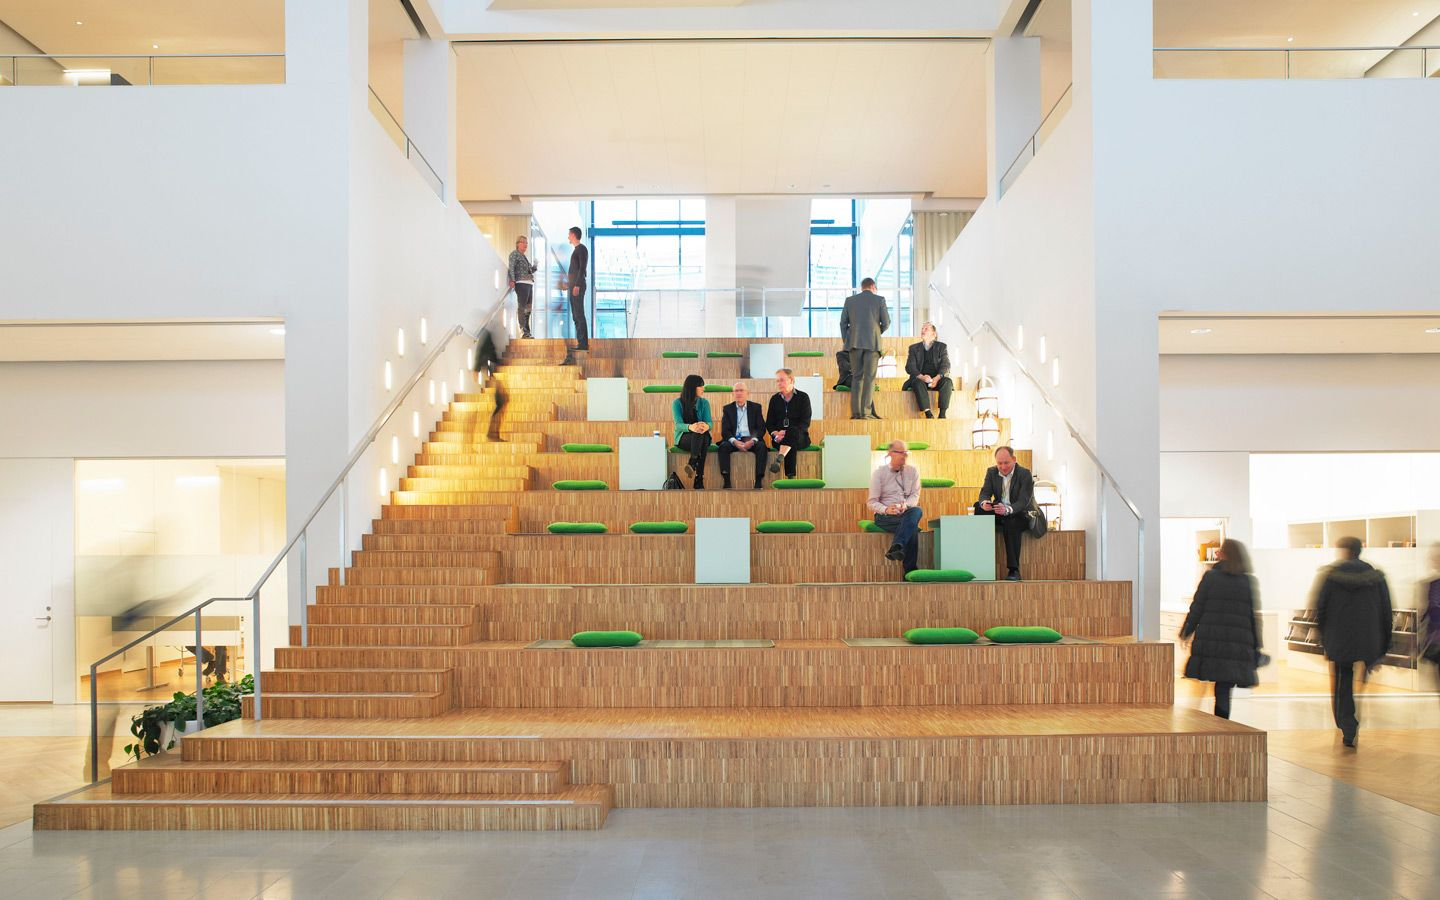 In Atrium/lobby Couple Stairs With Tiered Lounge Area. Good For Impromptu  Meetings And